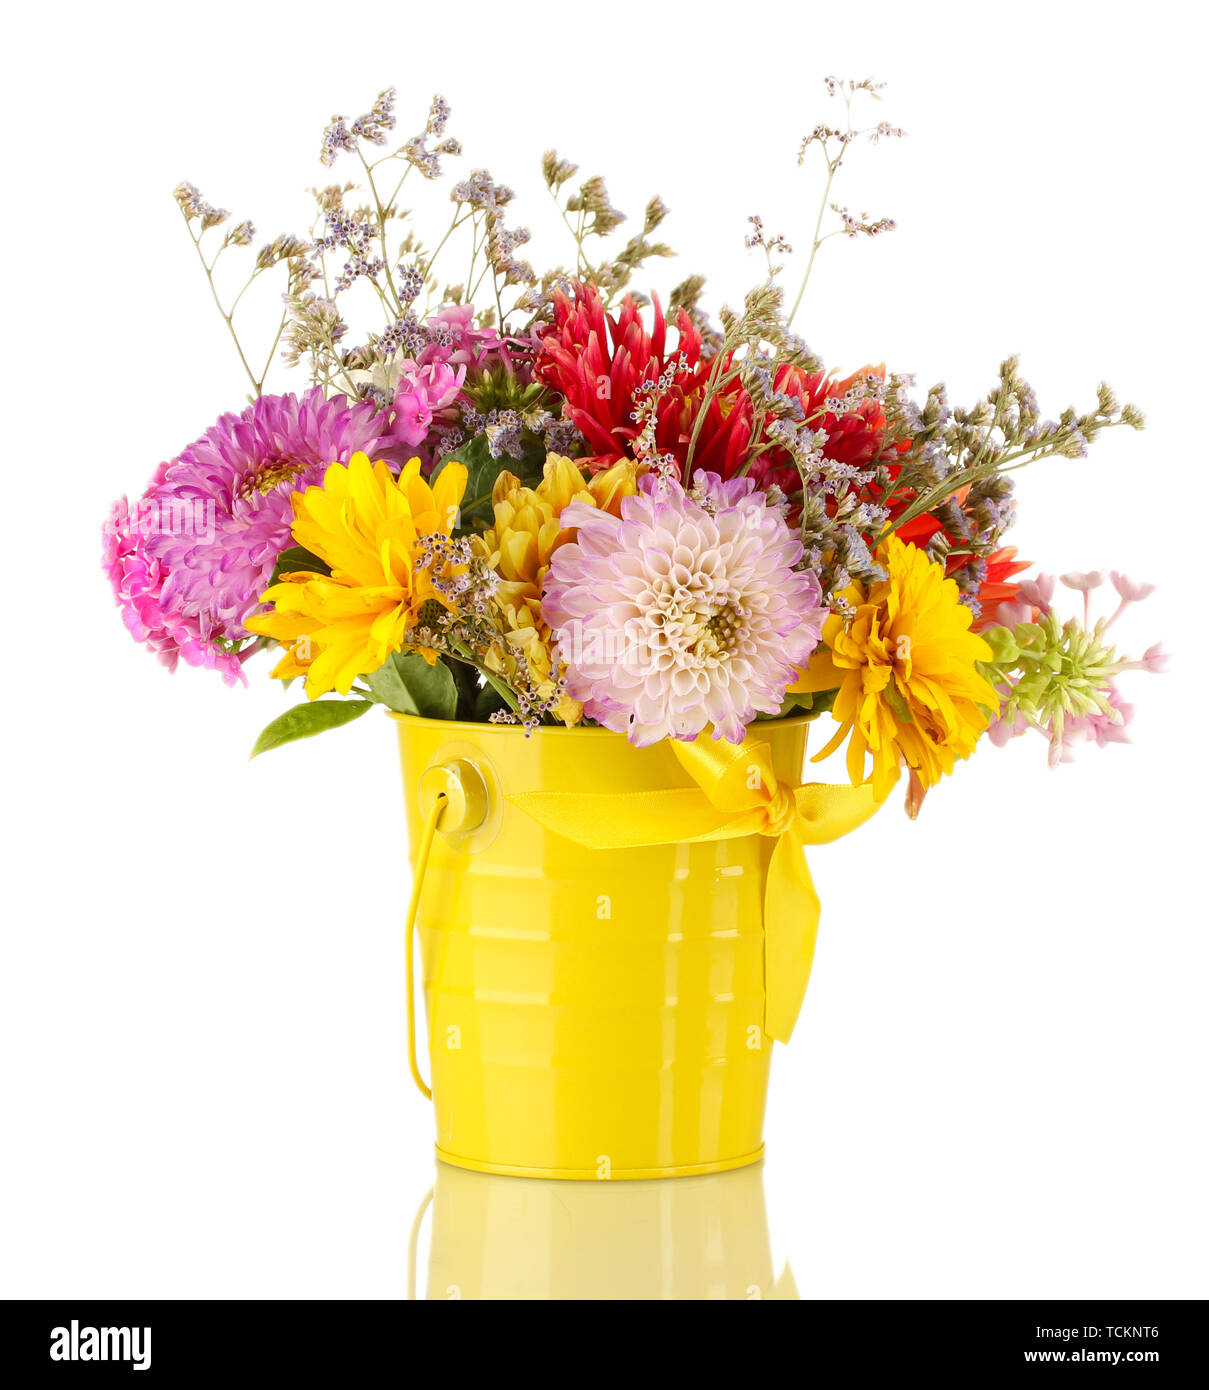 Bright yellow bucket with flowers isolated on white - Stock Image